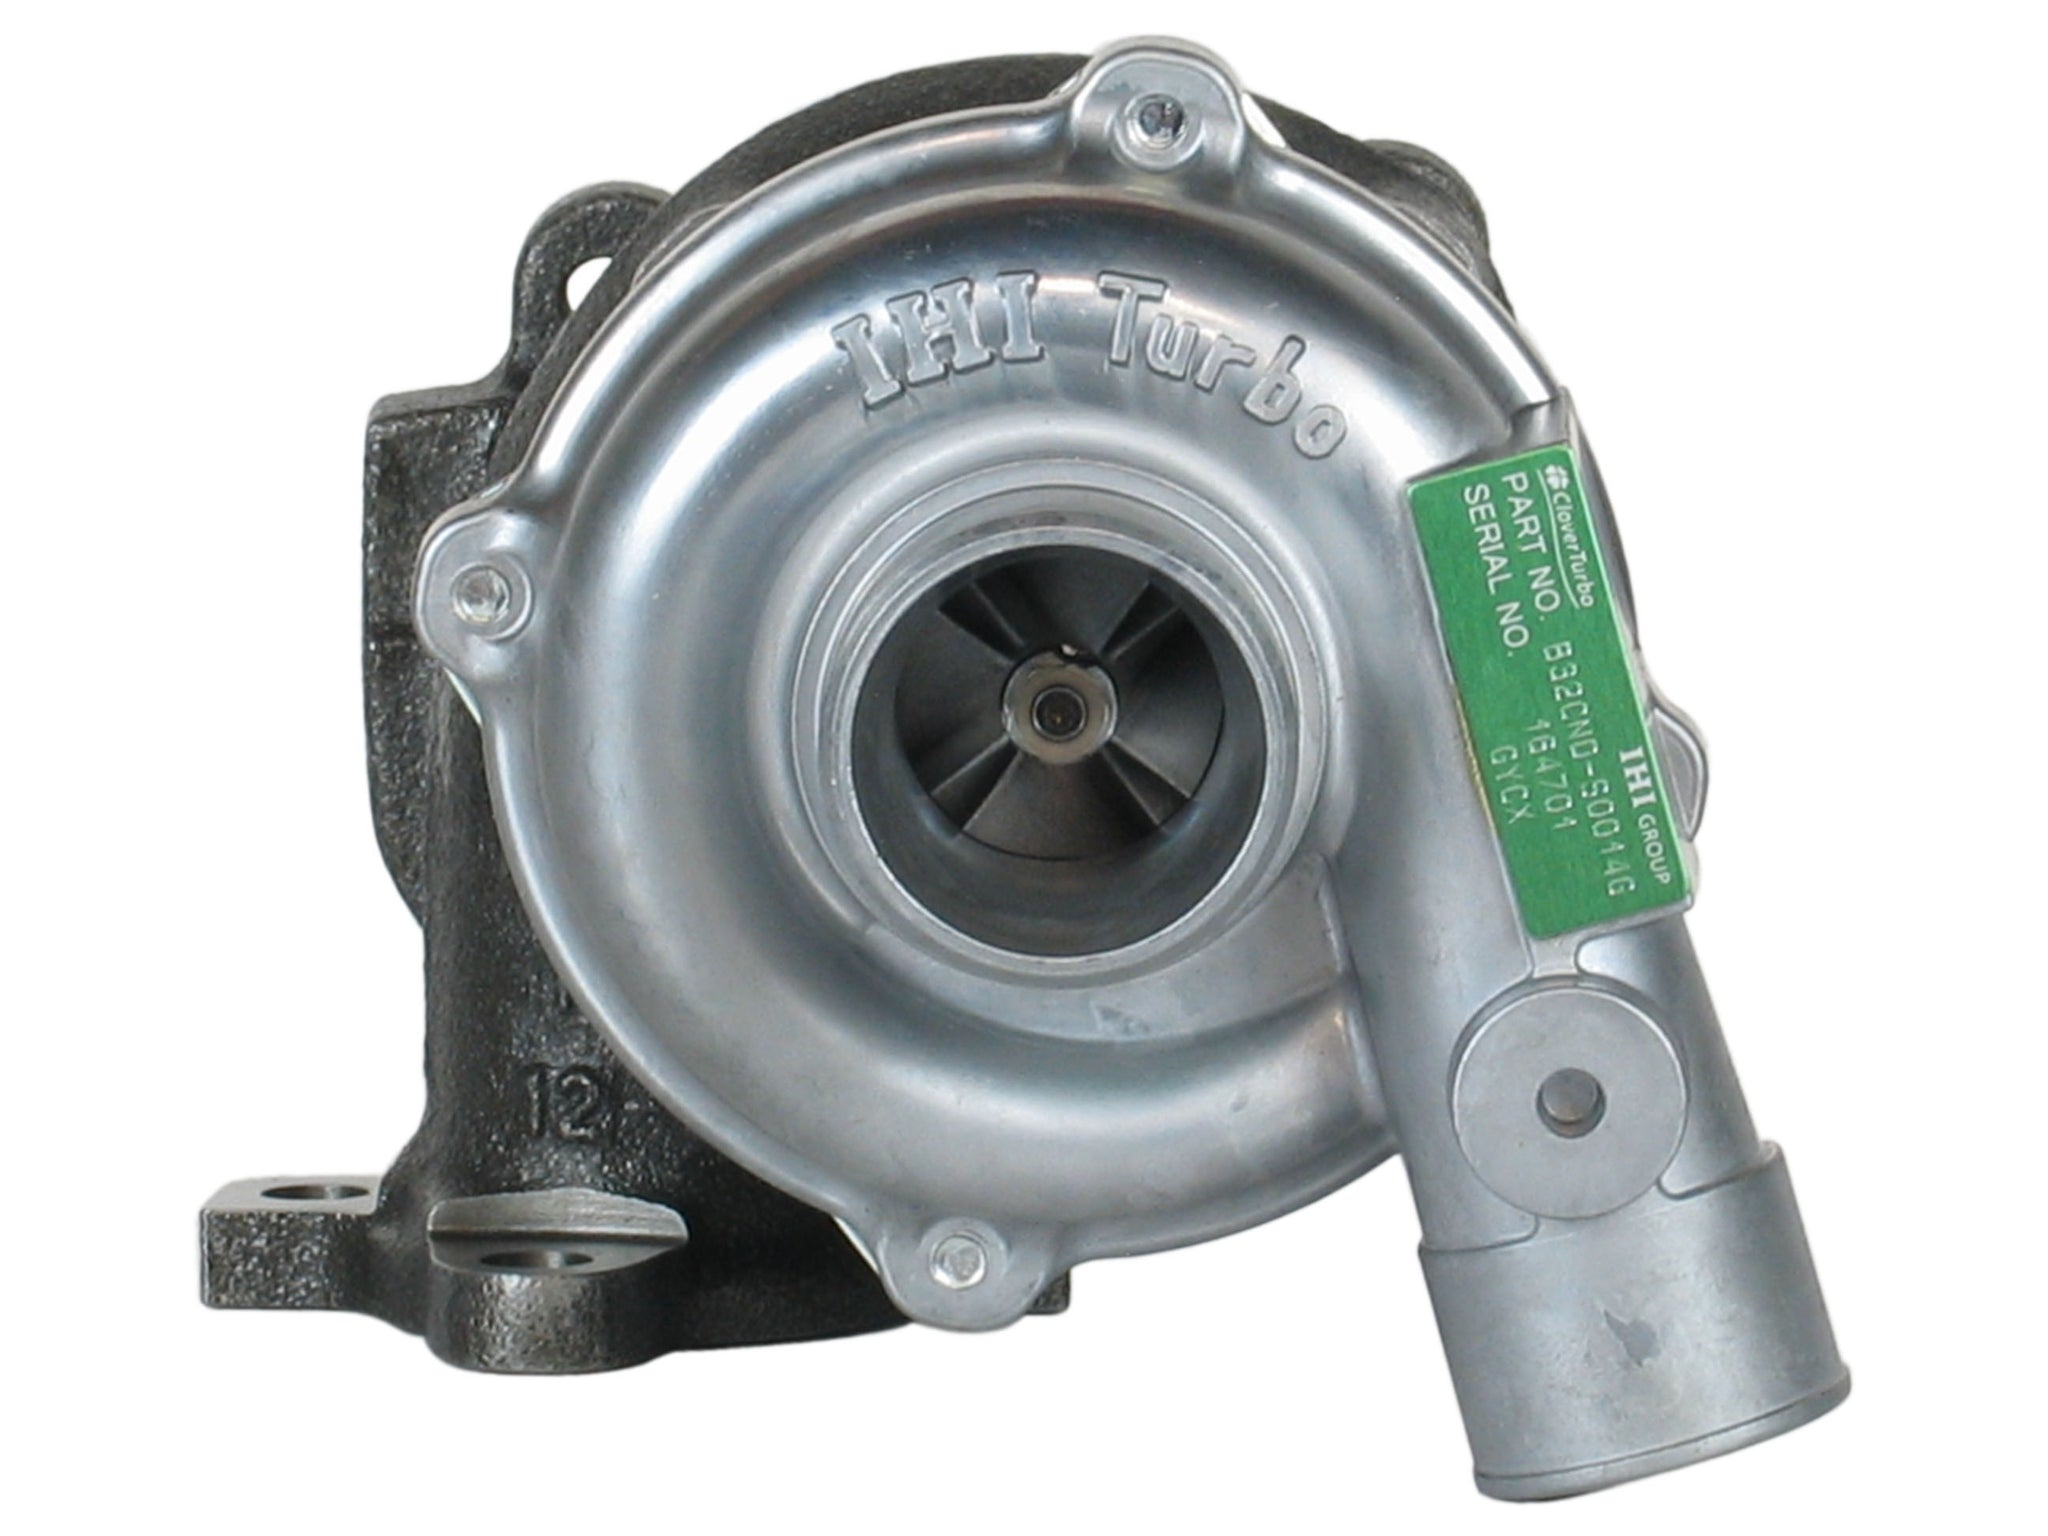 Yanmar 4TN84TL-RGD 129611-18010 V-170014 GYCX NEW OEM IHI RHB31 Turbocharger - TurboTurbos